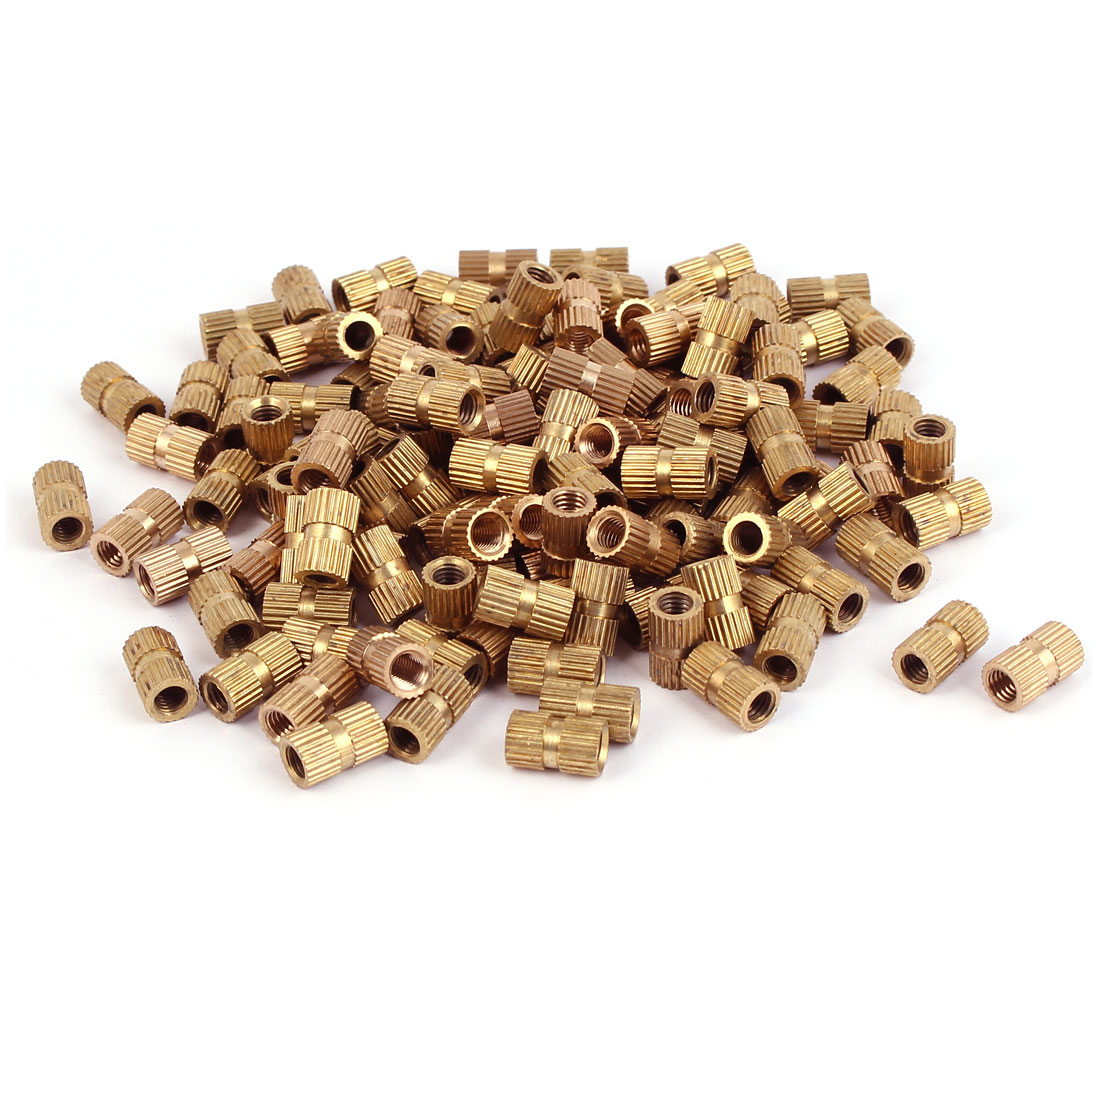 M5 x 12mm x 7.3mm Brass Knurled Threaded Round Insert Embedded Nuts 200PCS